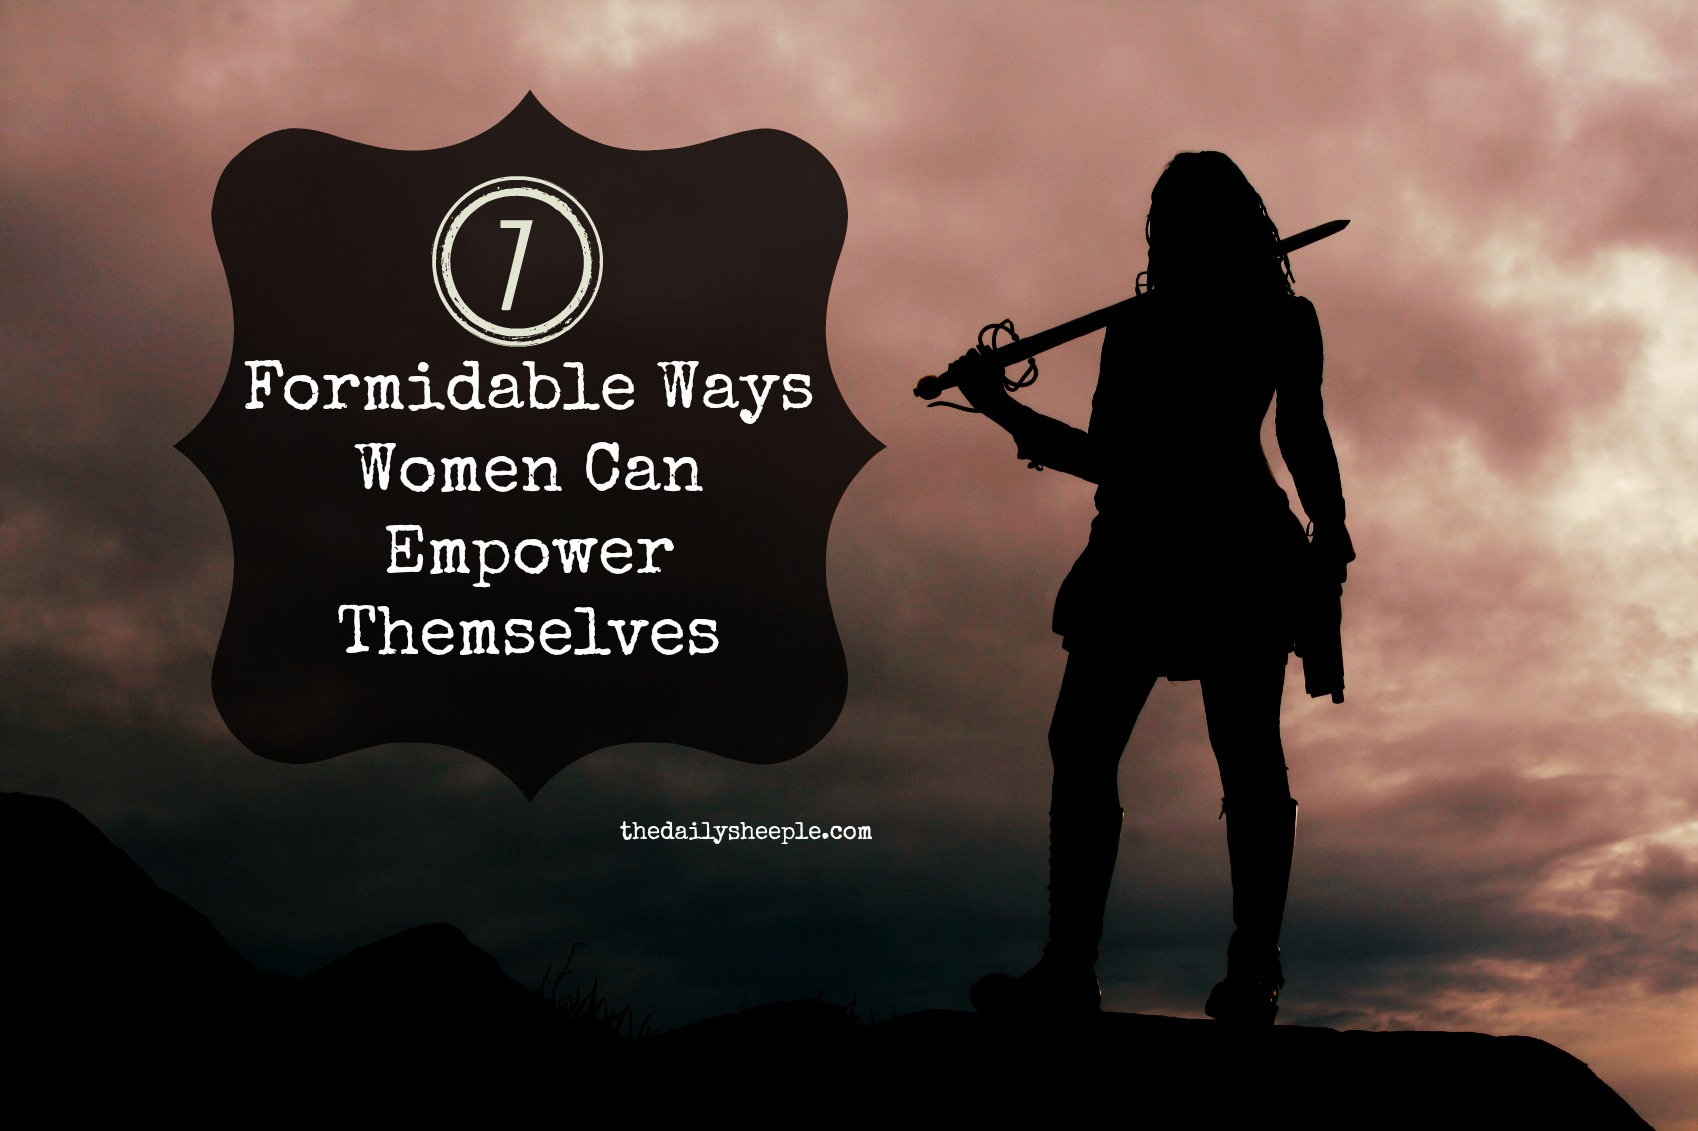 7 Formidable Ways Women Can Defend Themselves Ready